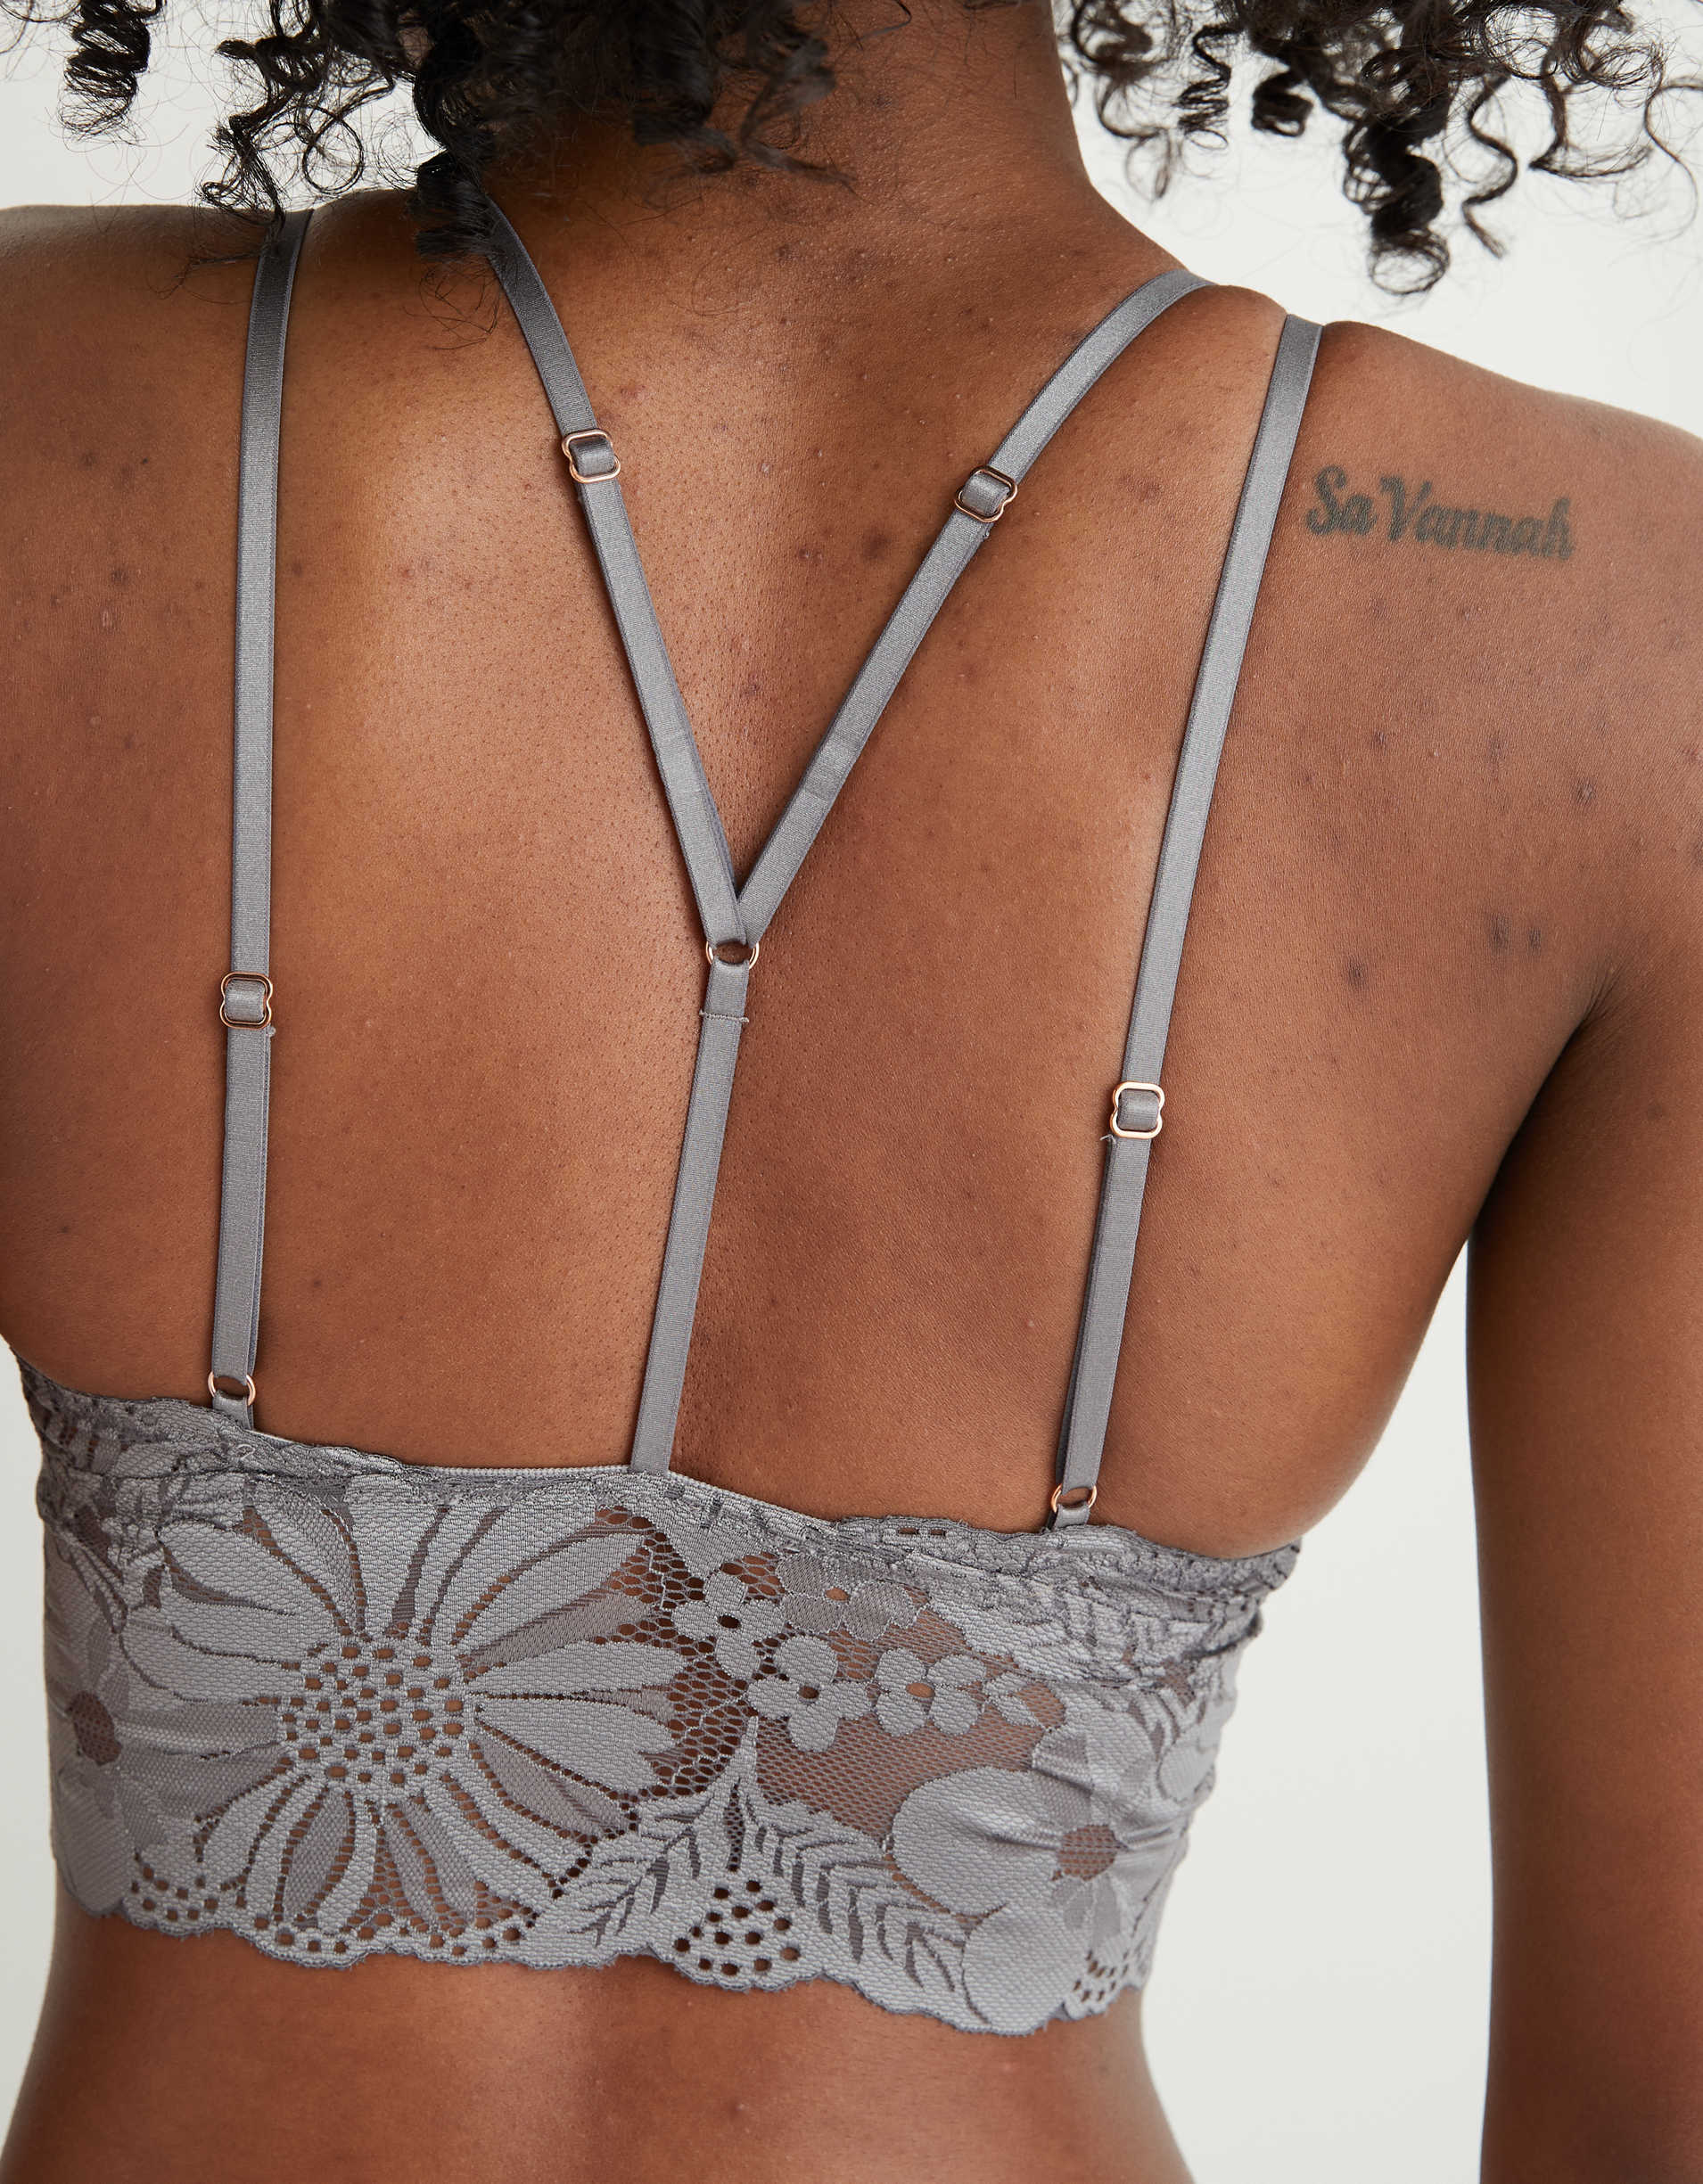 Aerie Garden Party Lace Strappy Padded Bralette